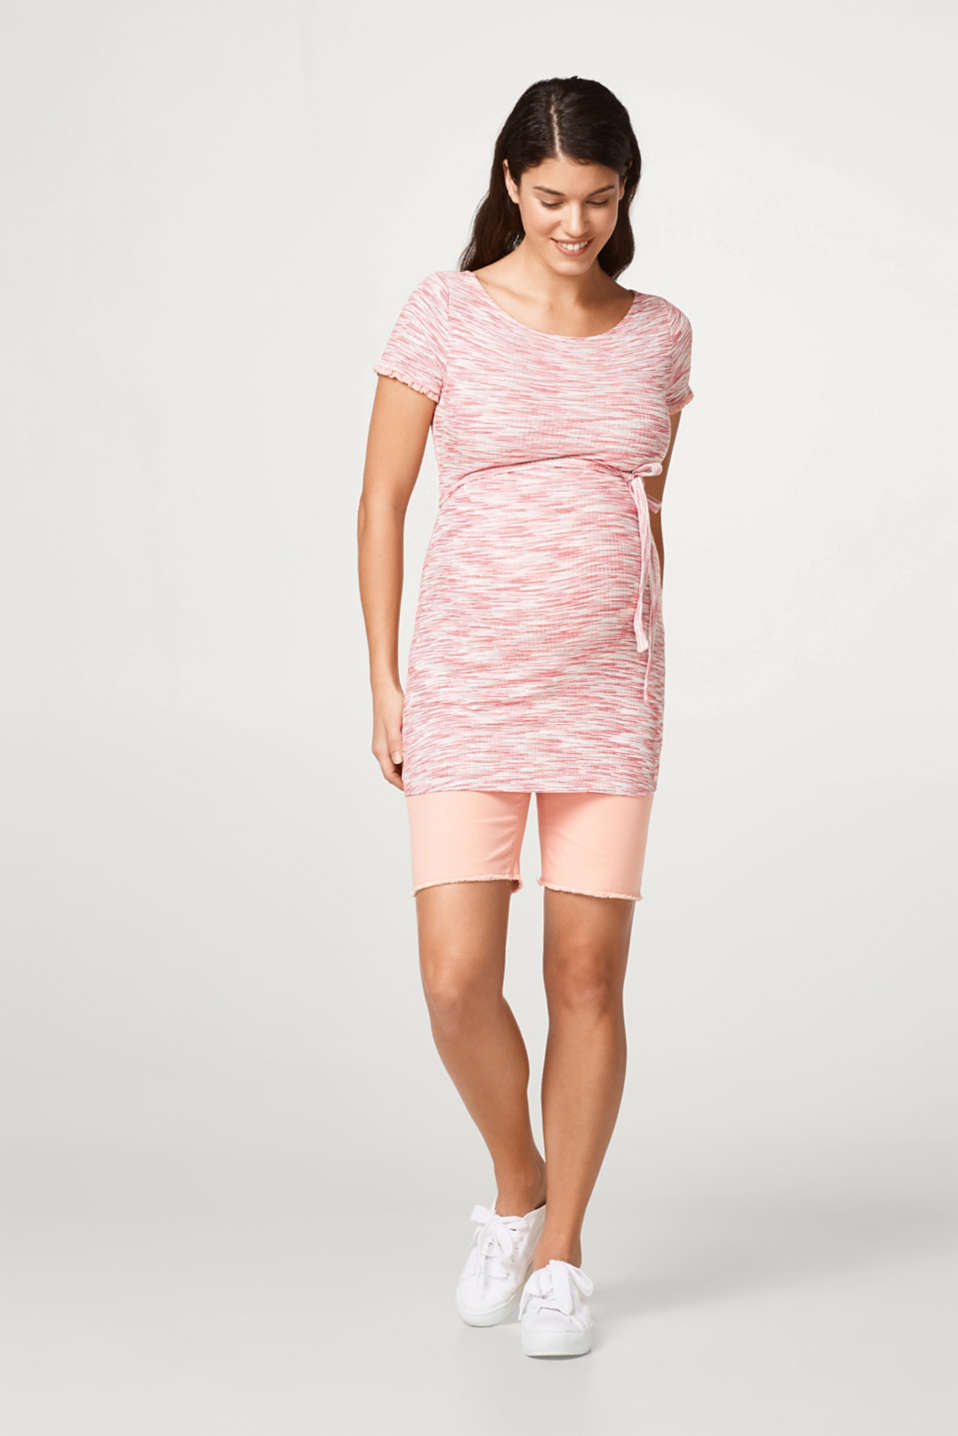 Finely ribbed maternity top + belt